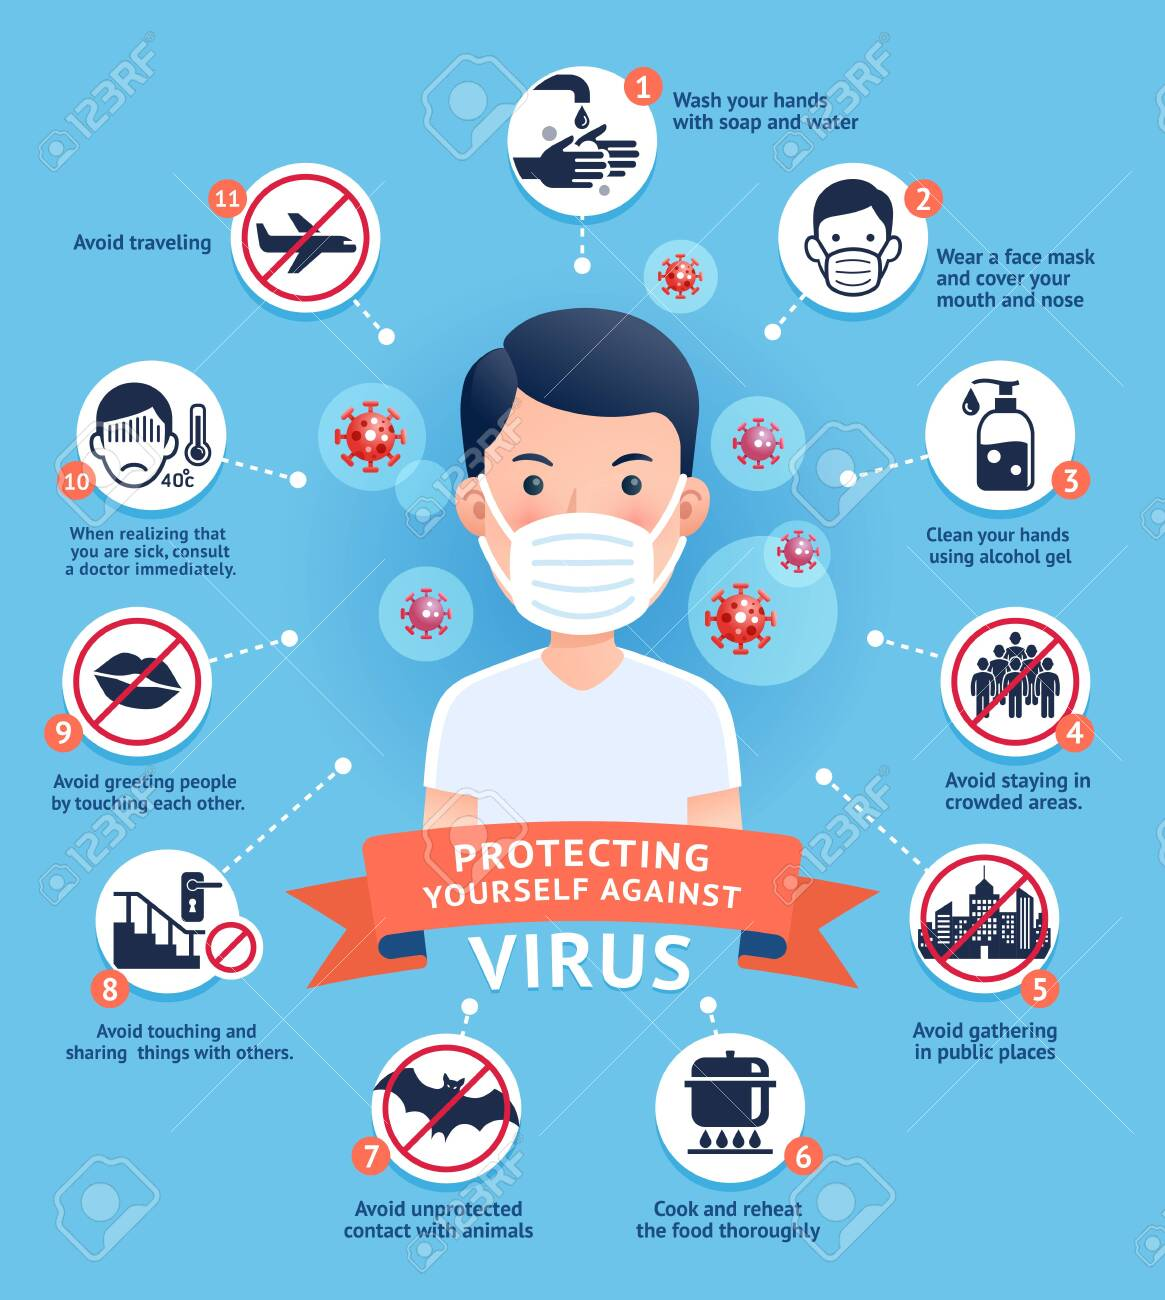 Diagram of how to protecting yourself against virus vector illustrations. - 143190556